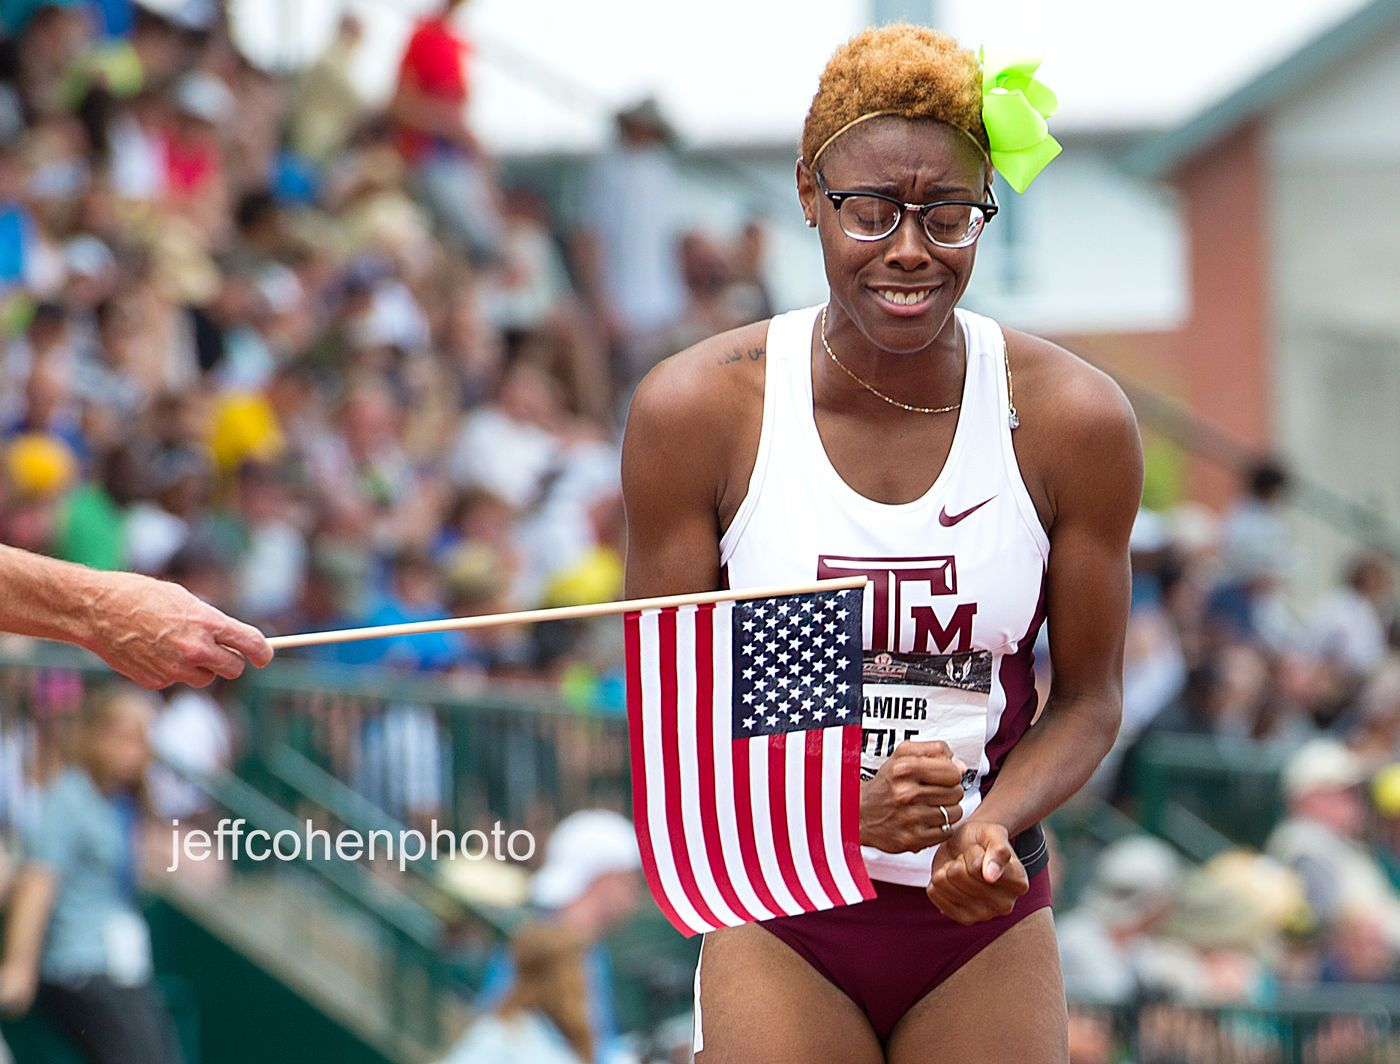 1r2015_usaoutdoors_day_4_shamier_little_400mw_jeff_cohen_1876__web.jpg